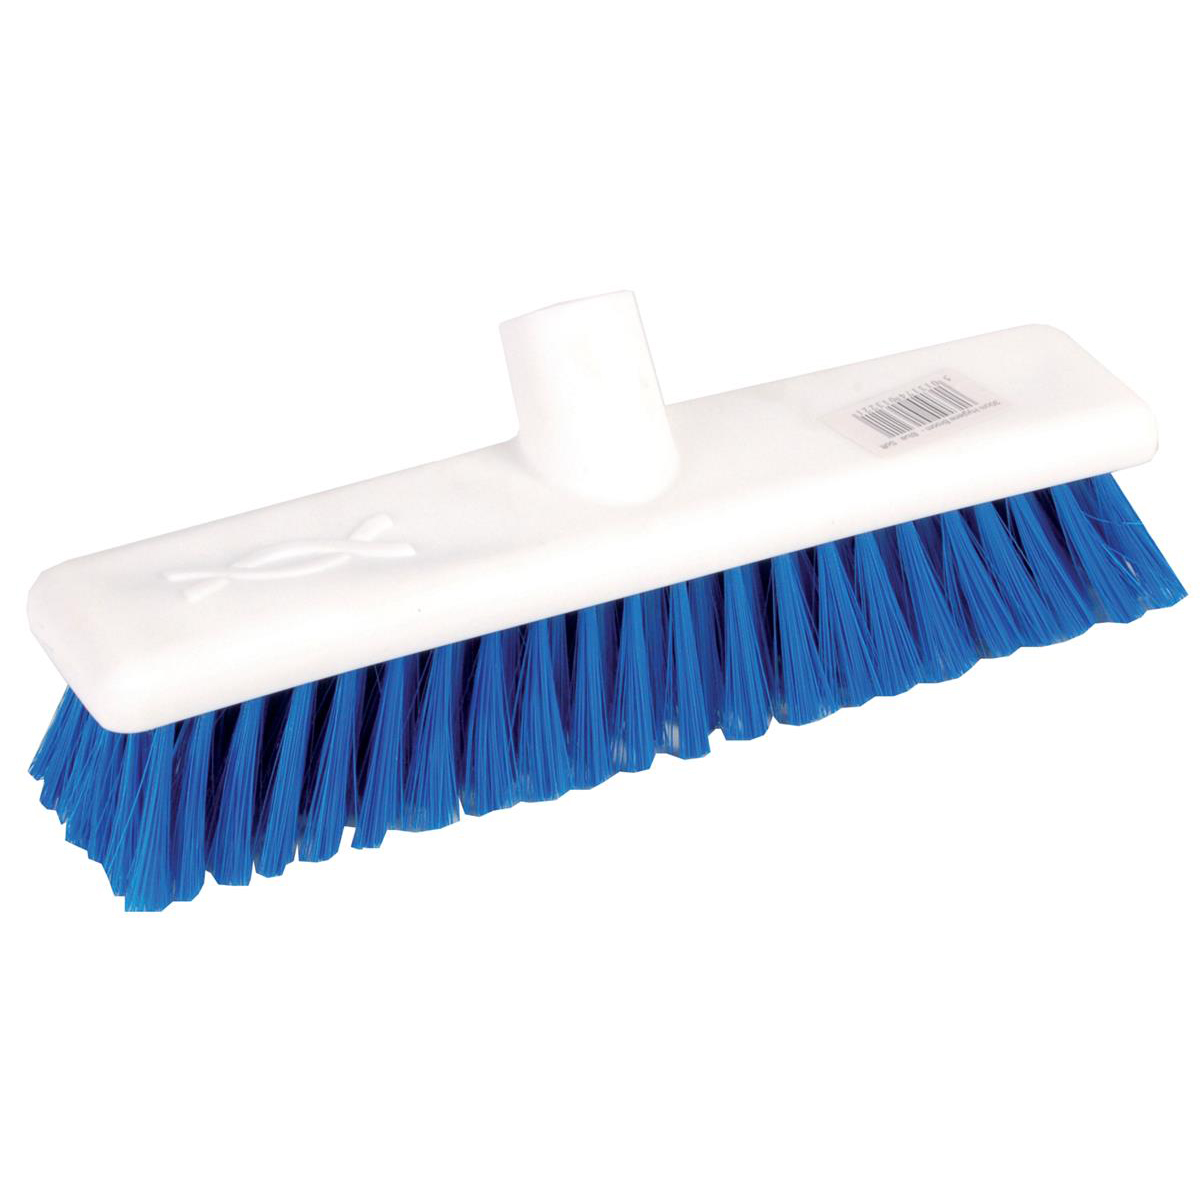 Broom heads Robert Scott & Sons Abbey Hygiene Broom 12inch Washable Soft Broom Head Blue Ref BHYRS12SBL